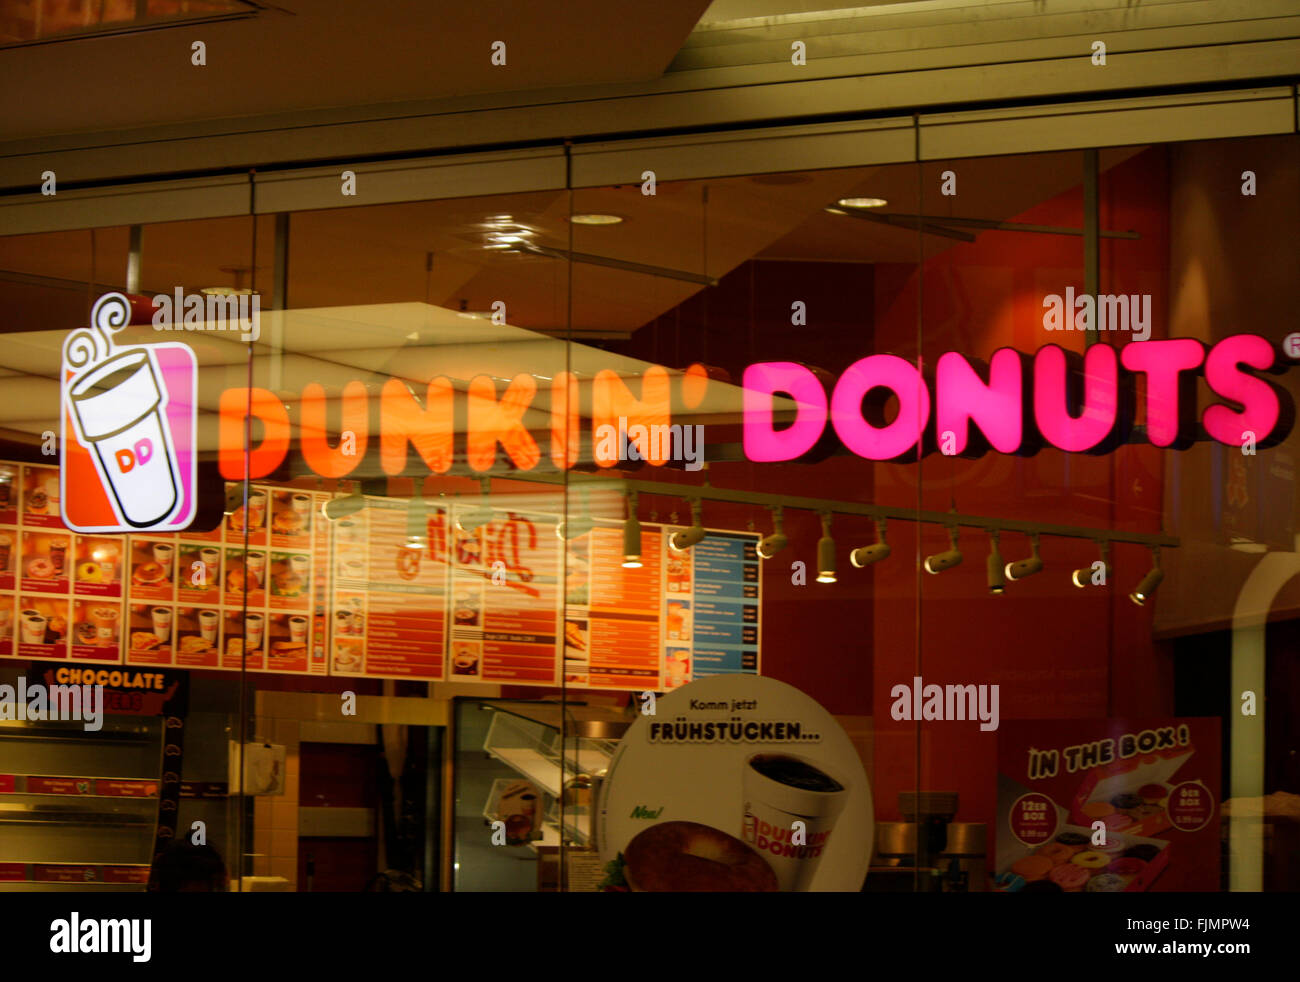 dunkin donuts stock photos dunkin donuts stock images. Black Bedroom Furniture Sets. Home Design Ideas